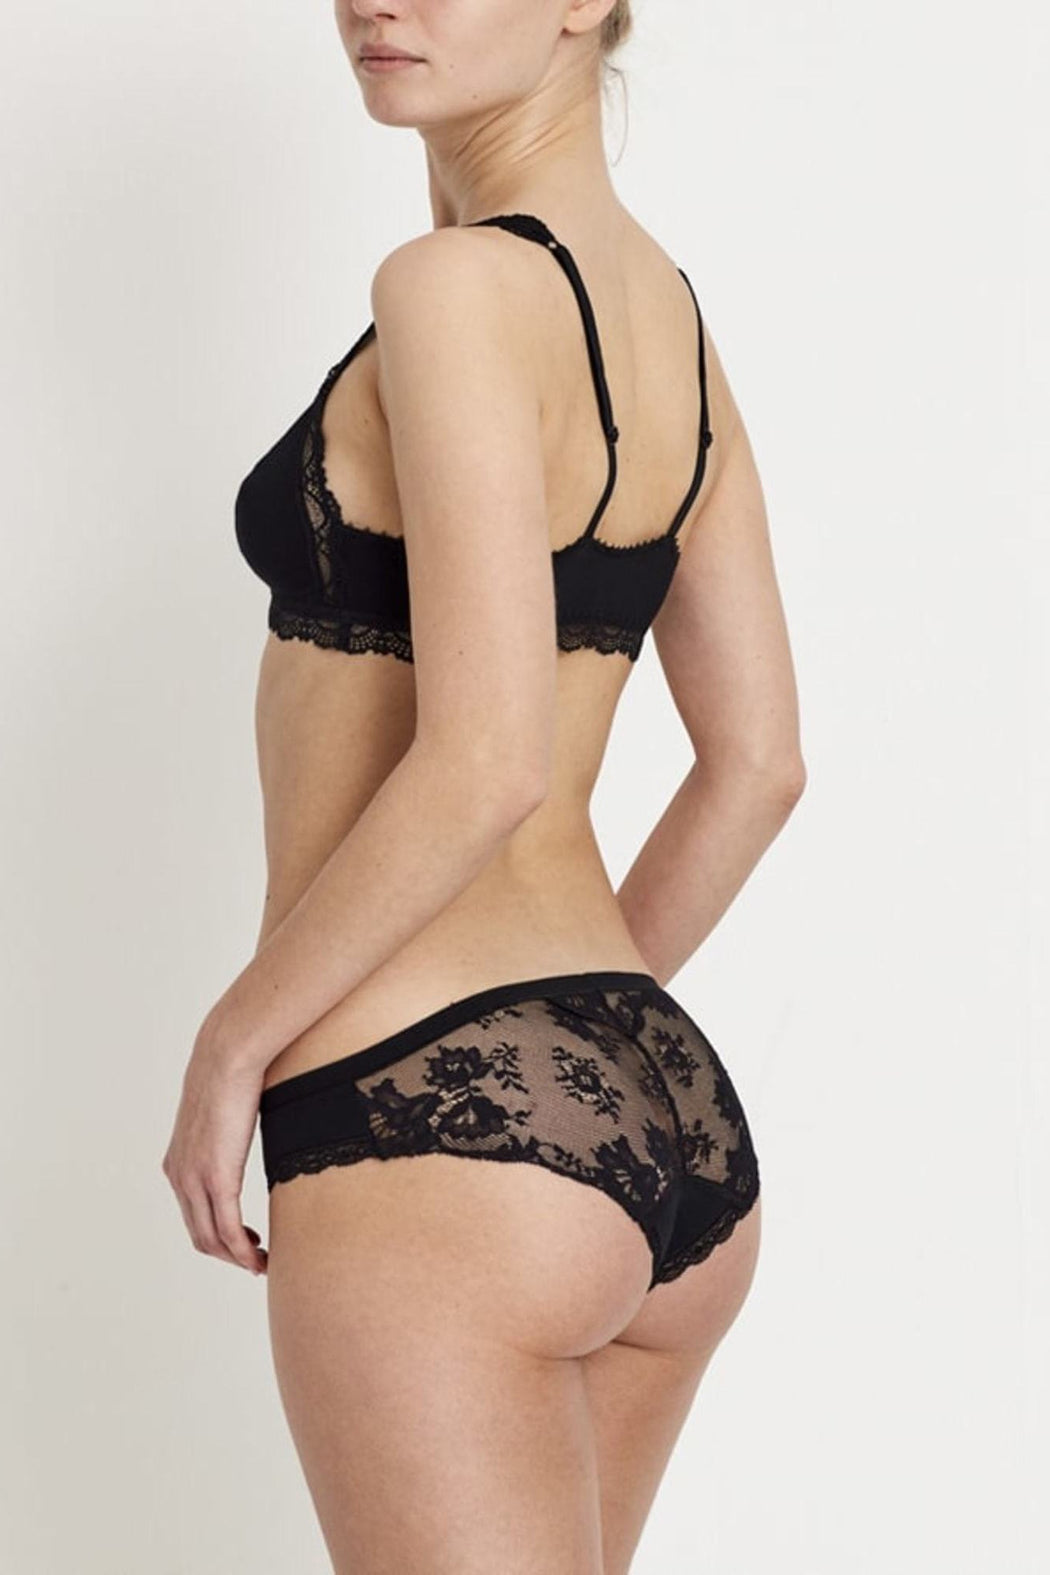 Venus Black Lace Undies